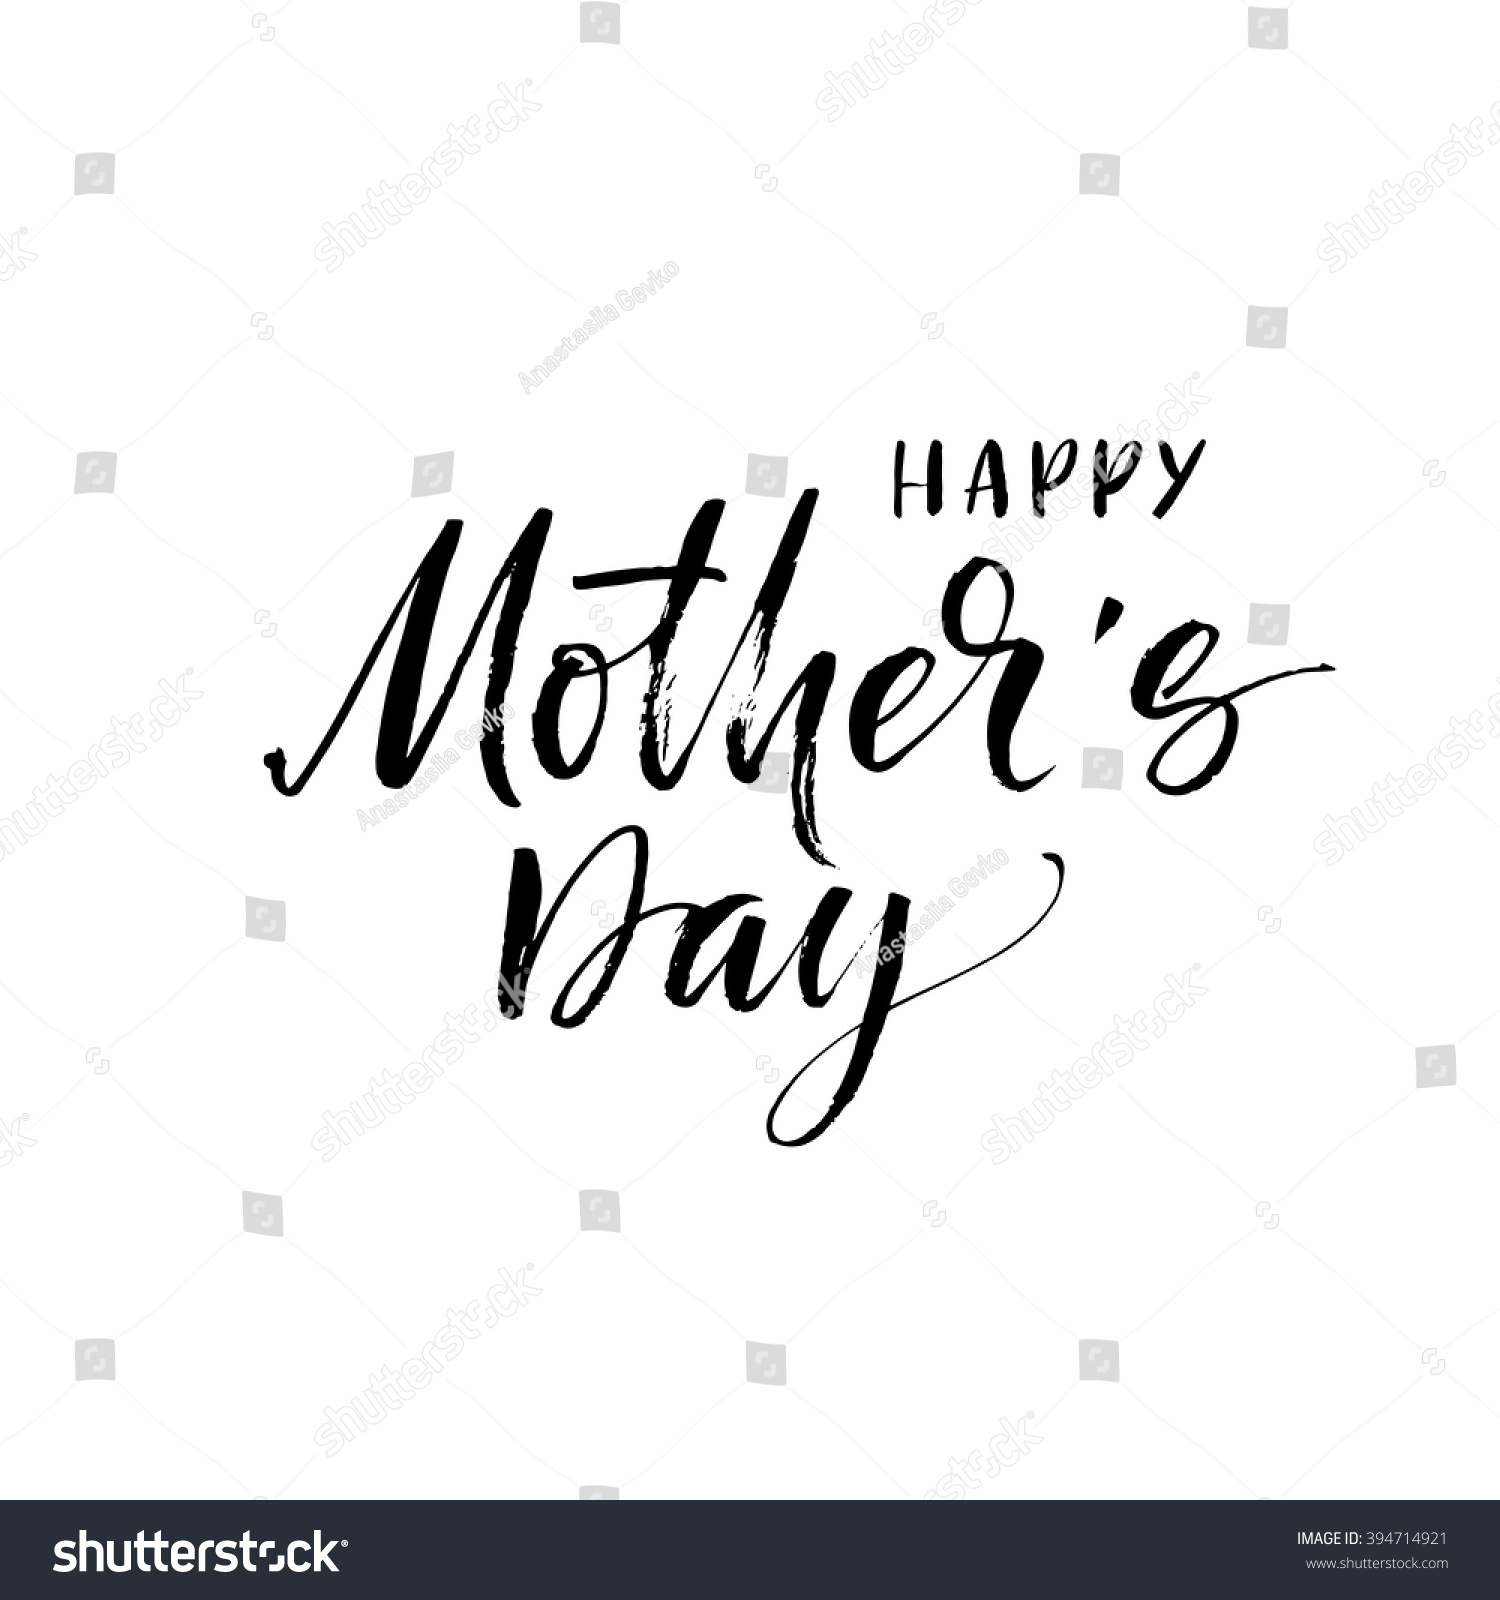 Happy mothers day card hand drawn stock vector